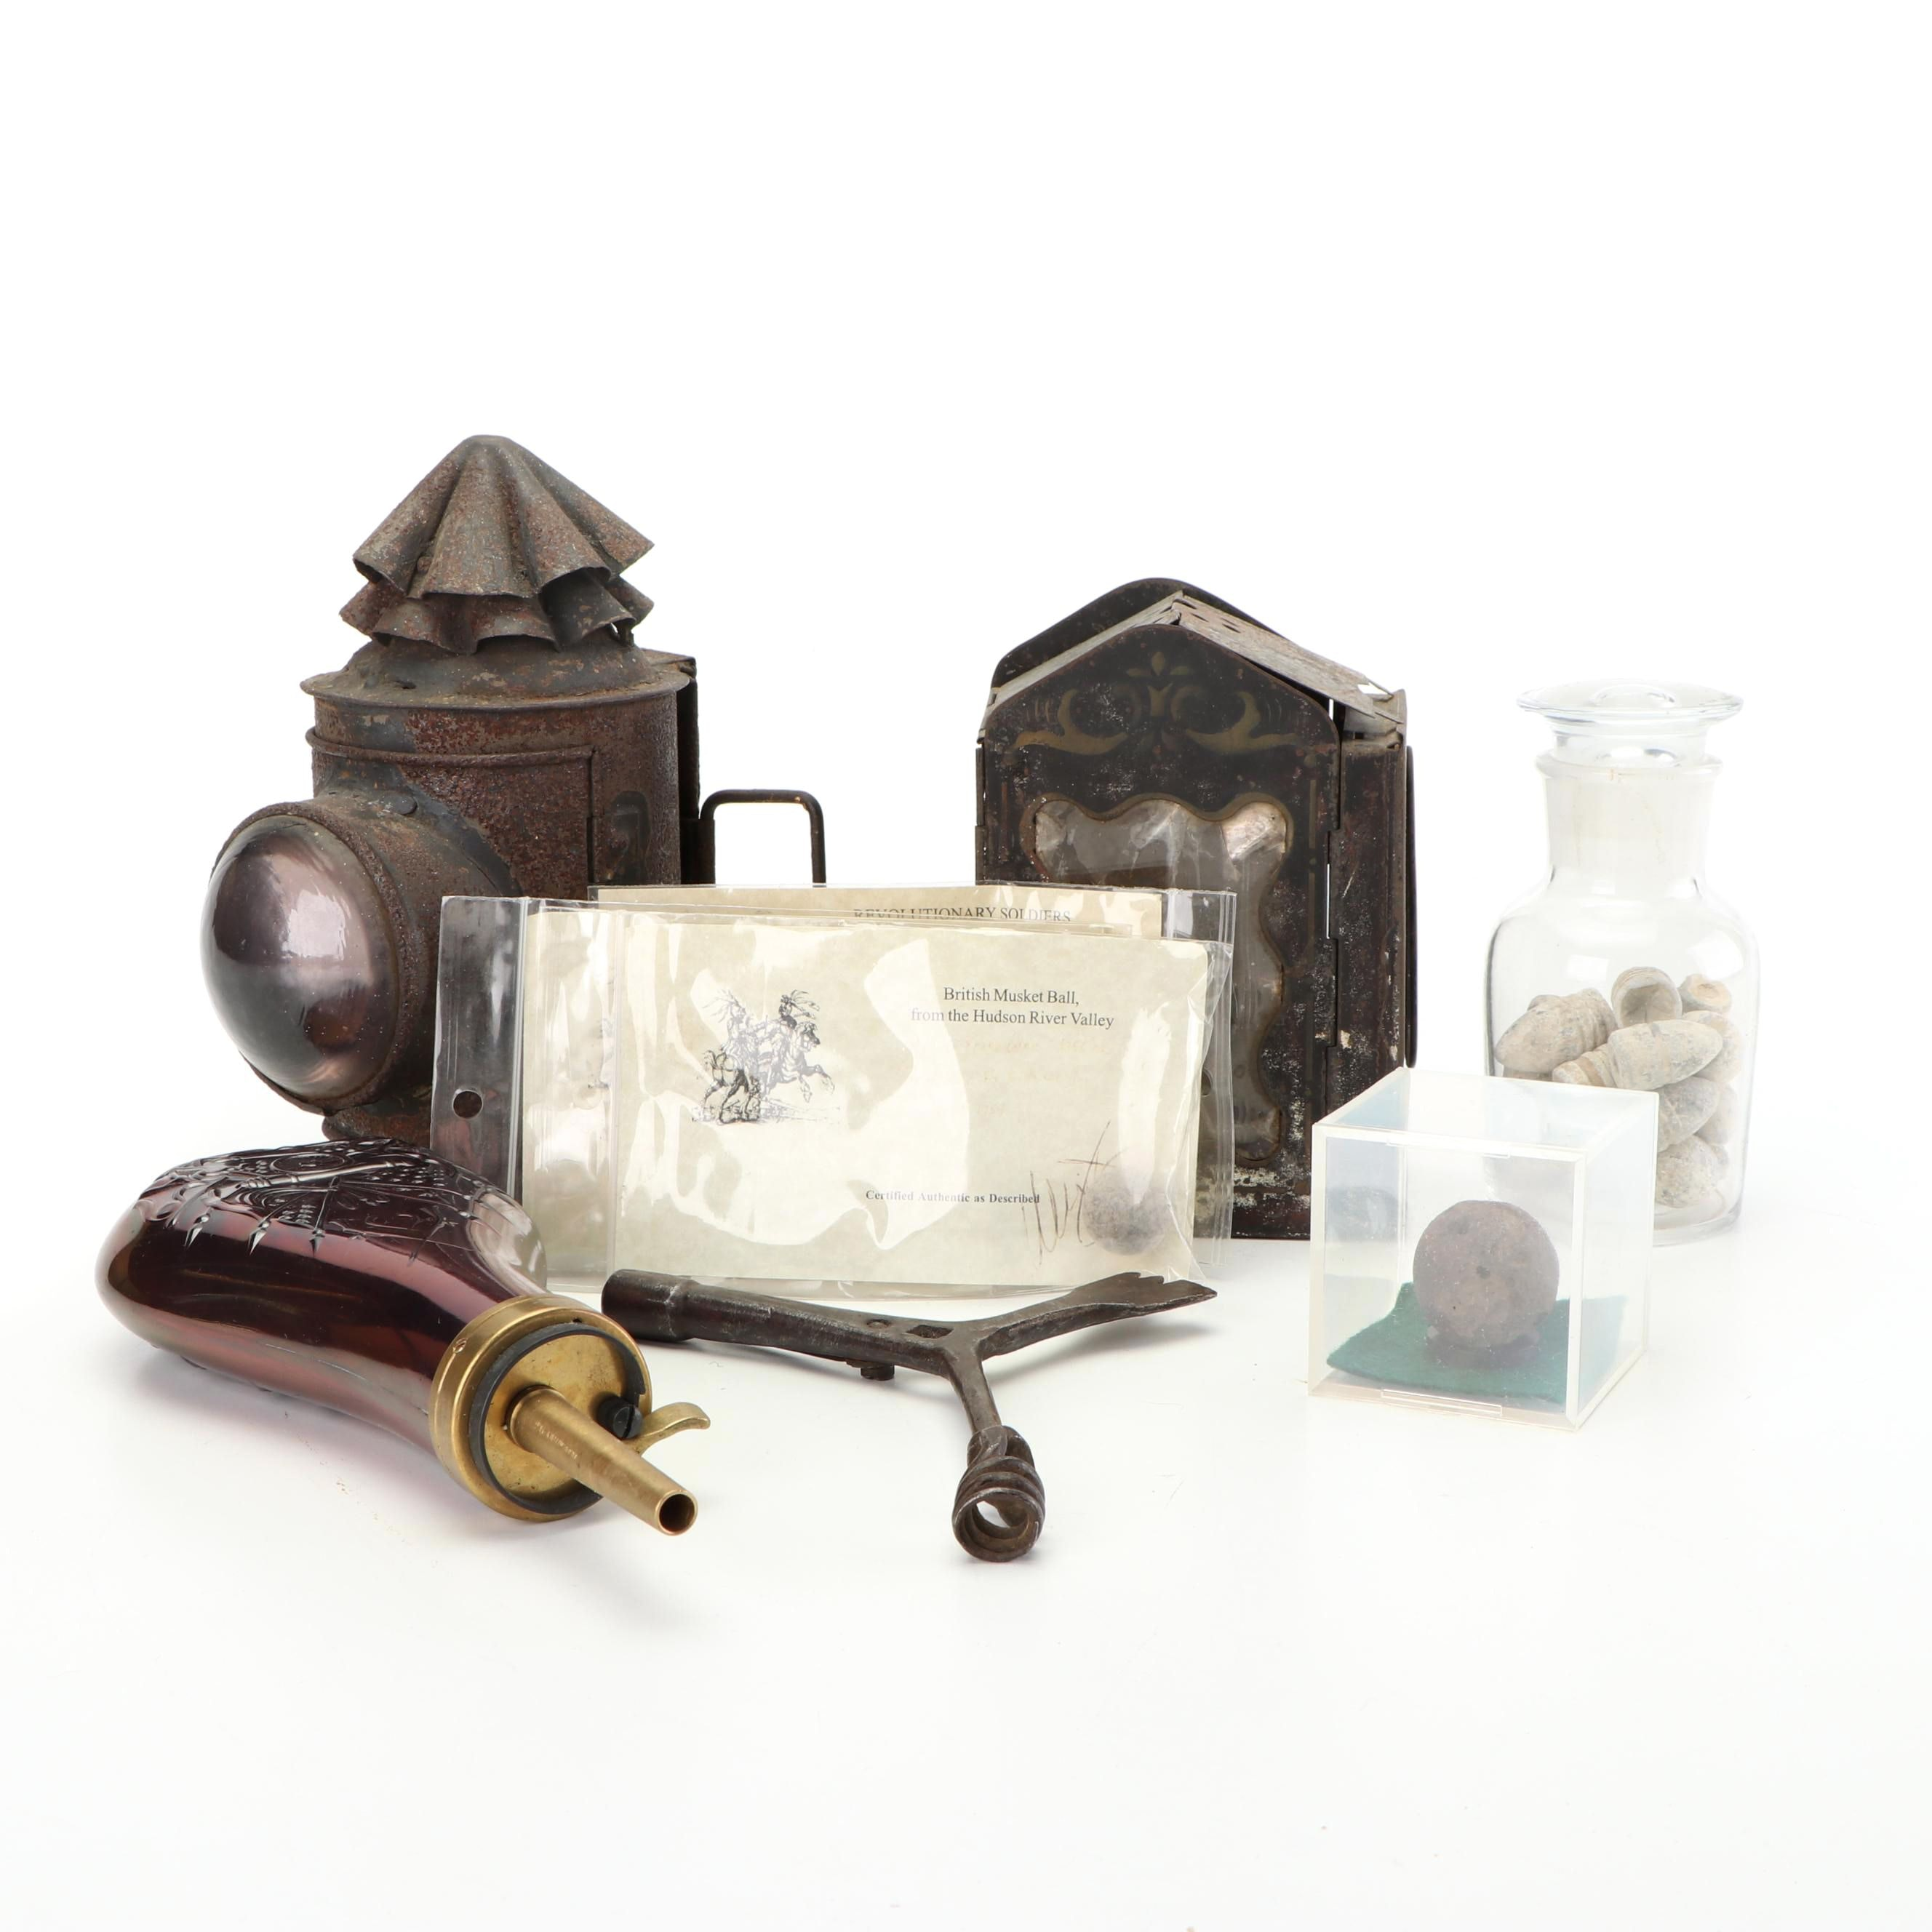 Assortment of Antique Projectiles, Tools, and Lanterns